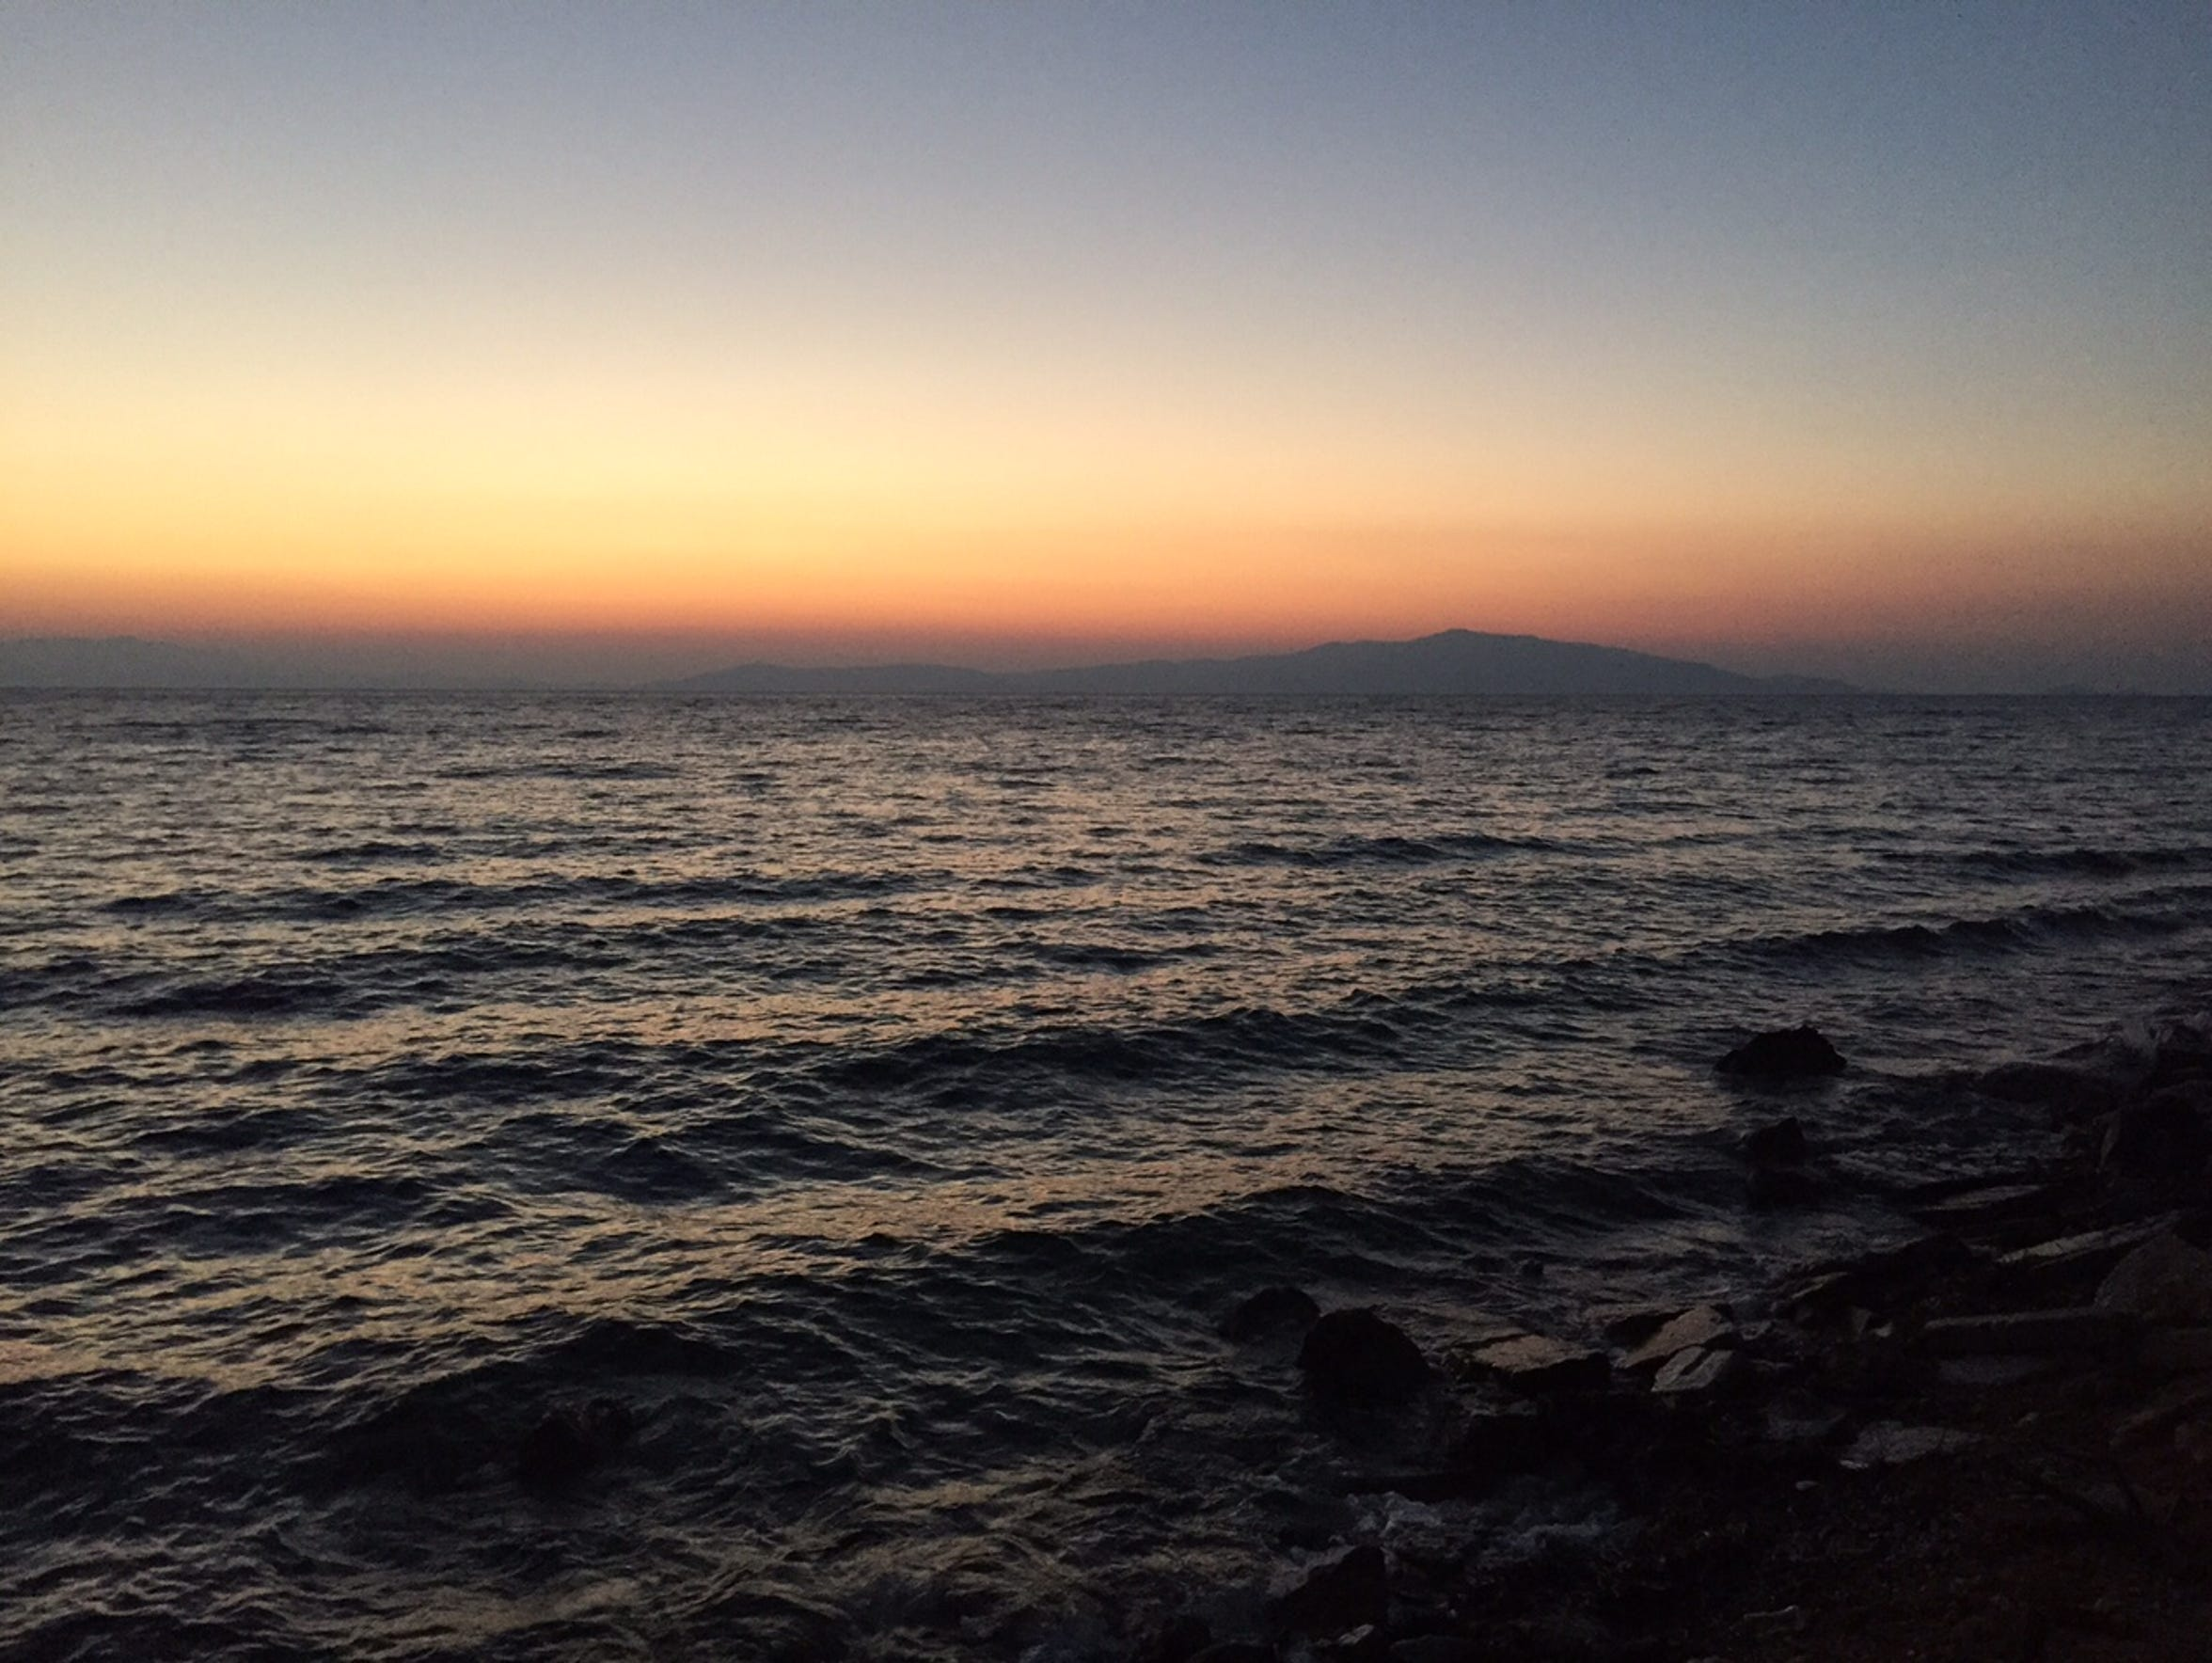 The Turkish mainland is visible from Lesbos, Greece,